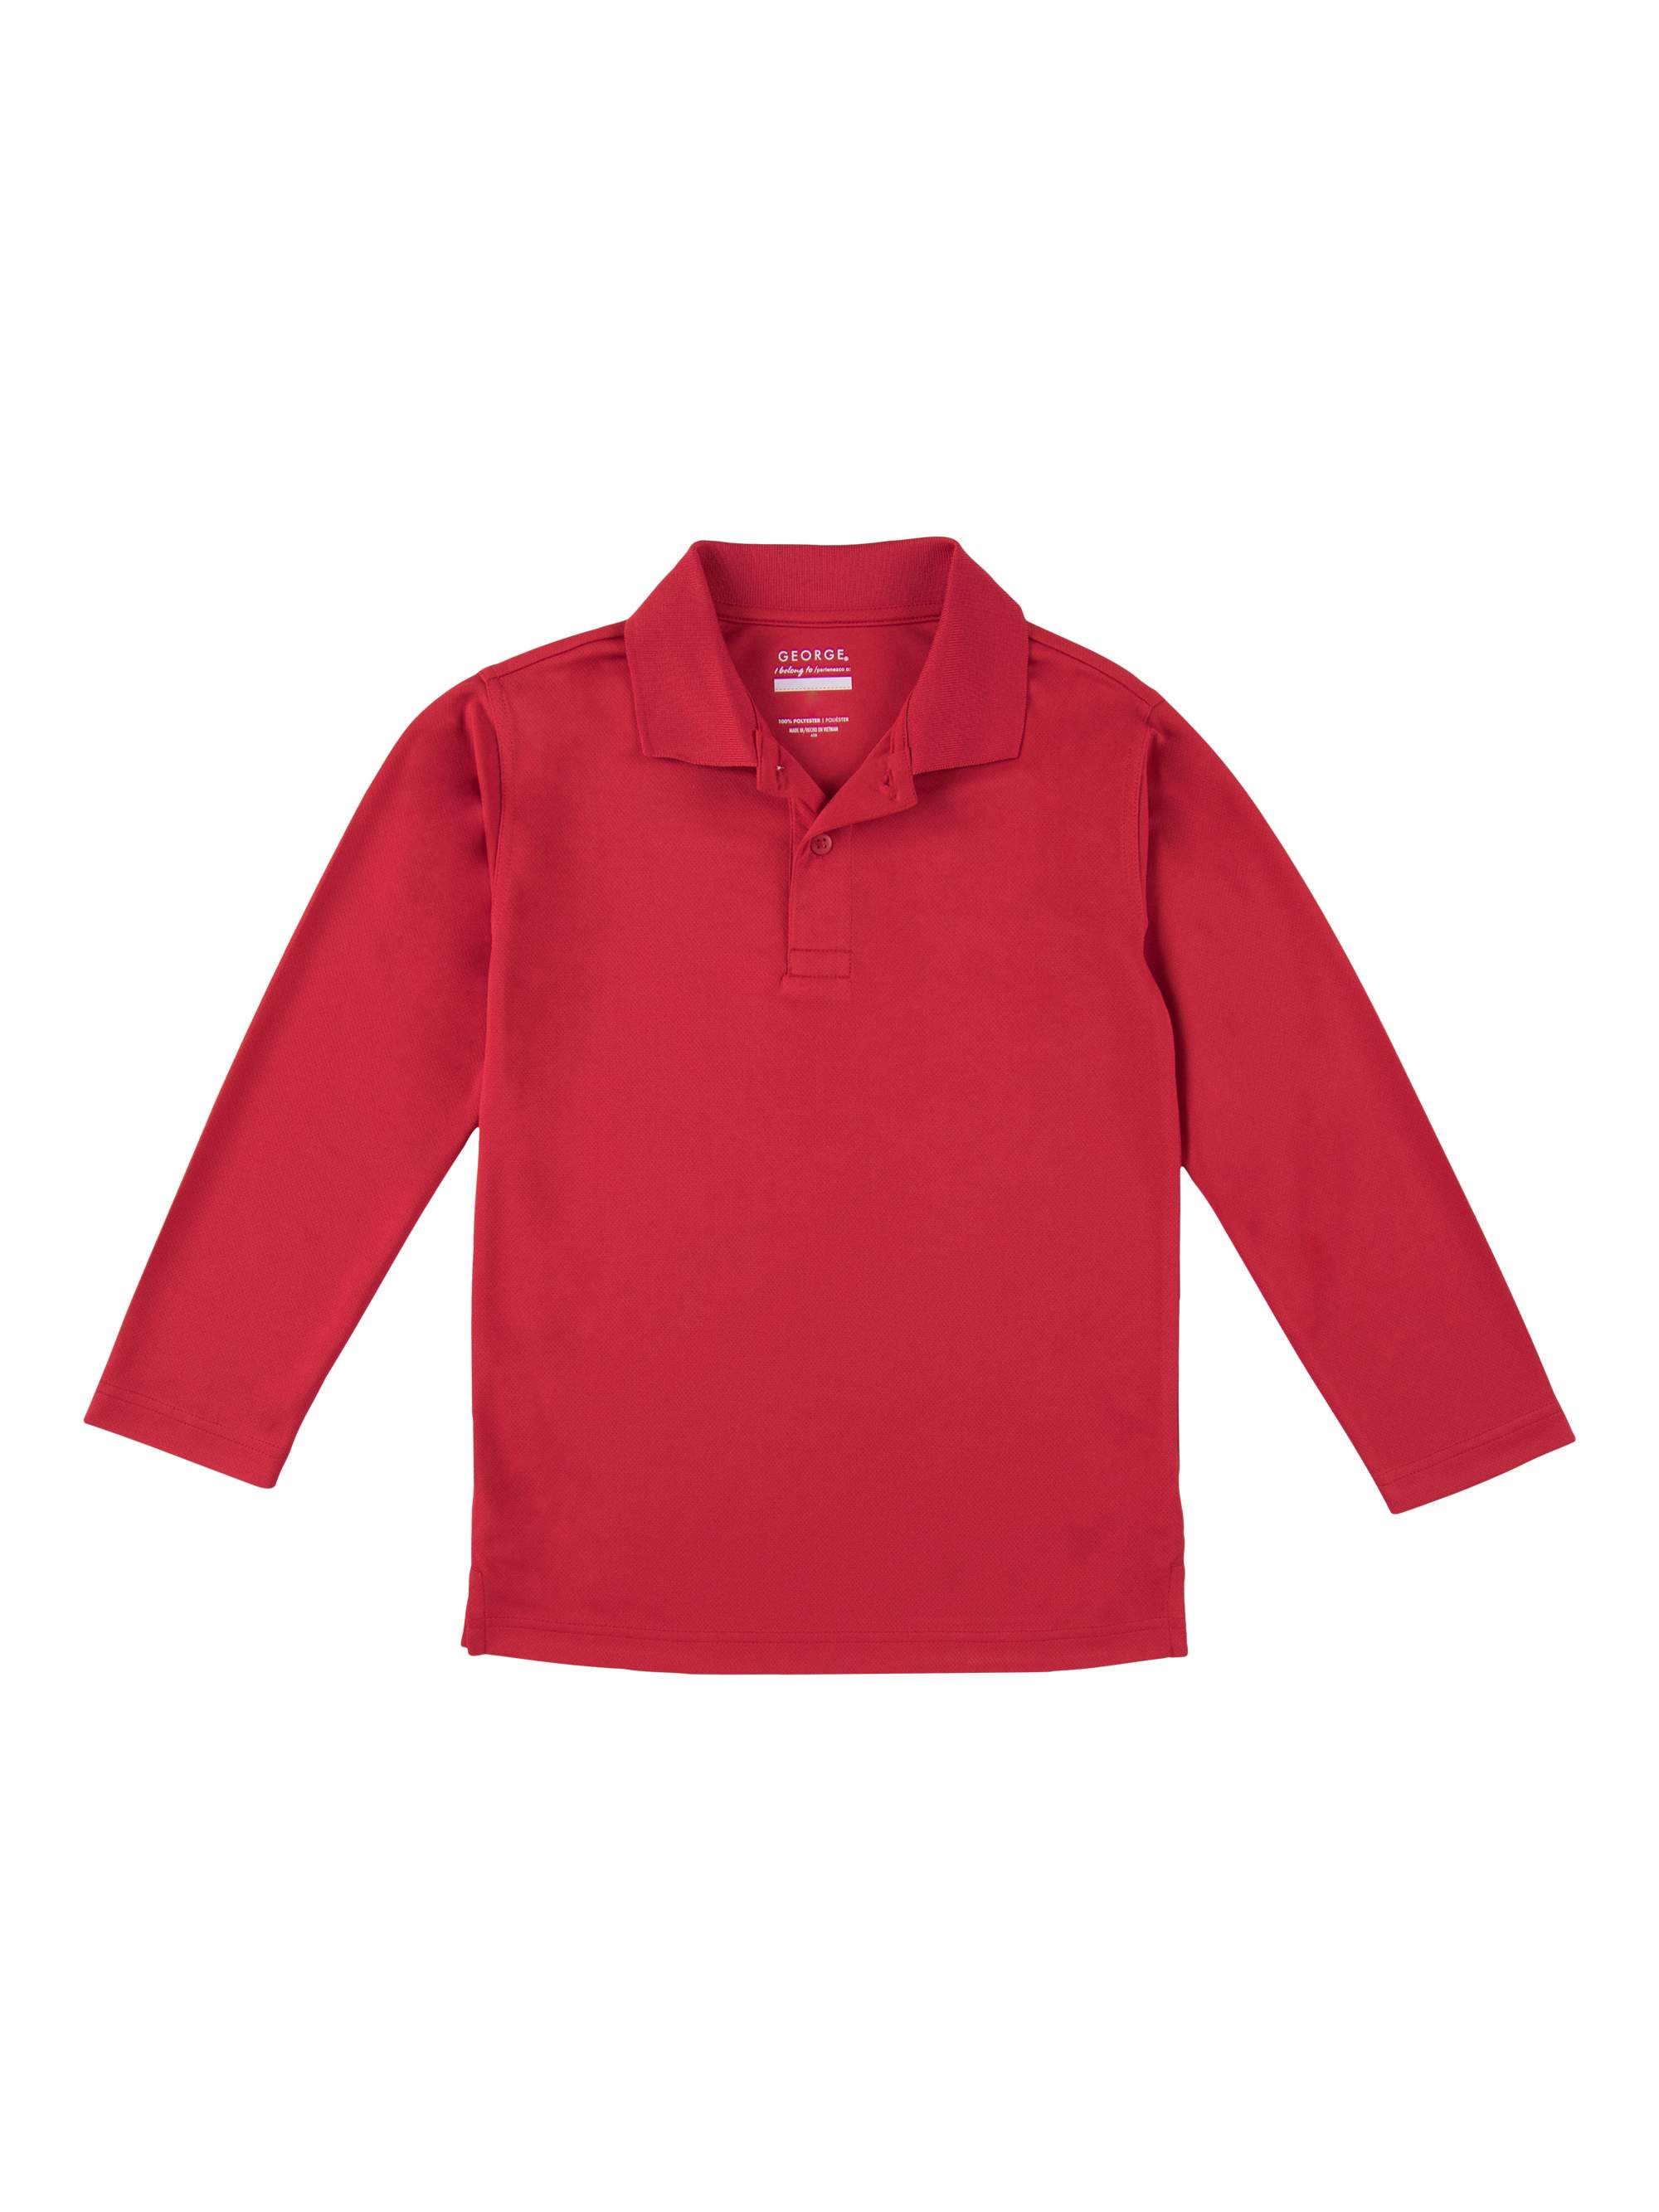 School Uniform Boys Long Sleeve Performance Polo Shirt